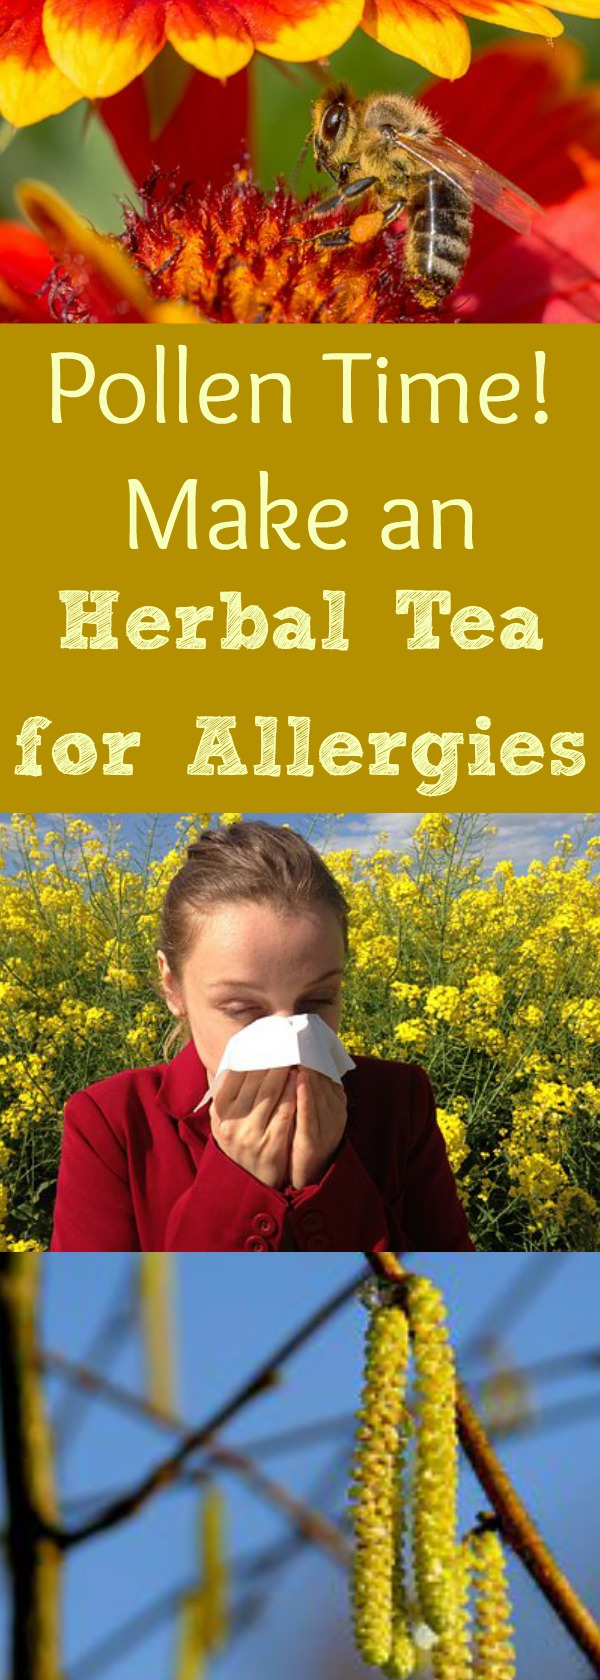 It's officially allergy season, and the pollen is rockin' & rollin' out there-- causing sinus inflammation and stuffy runny noses everywhere! Here's an herbal tea you can make for your family that will soothe and calm those allergies!